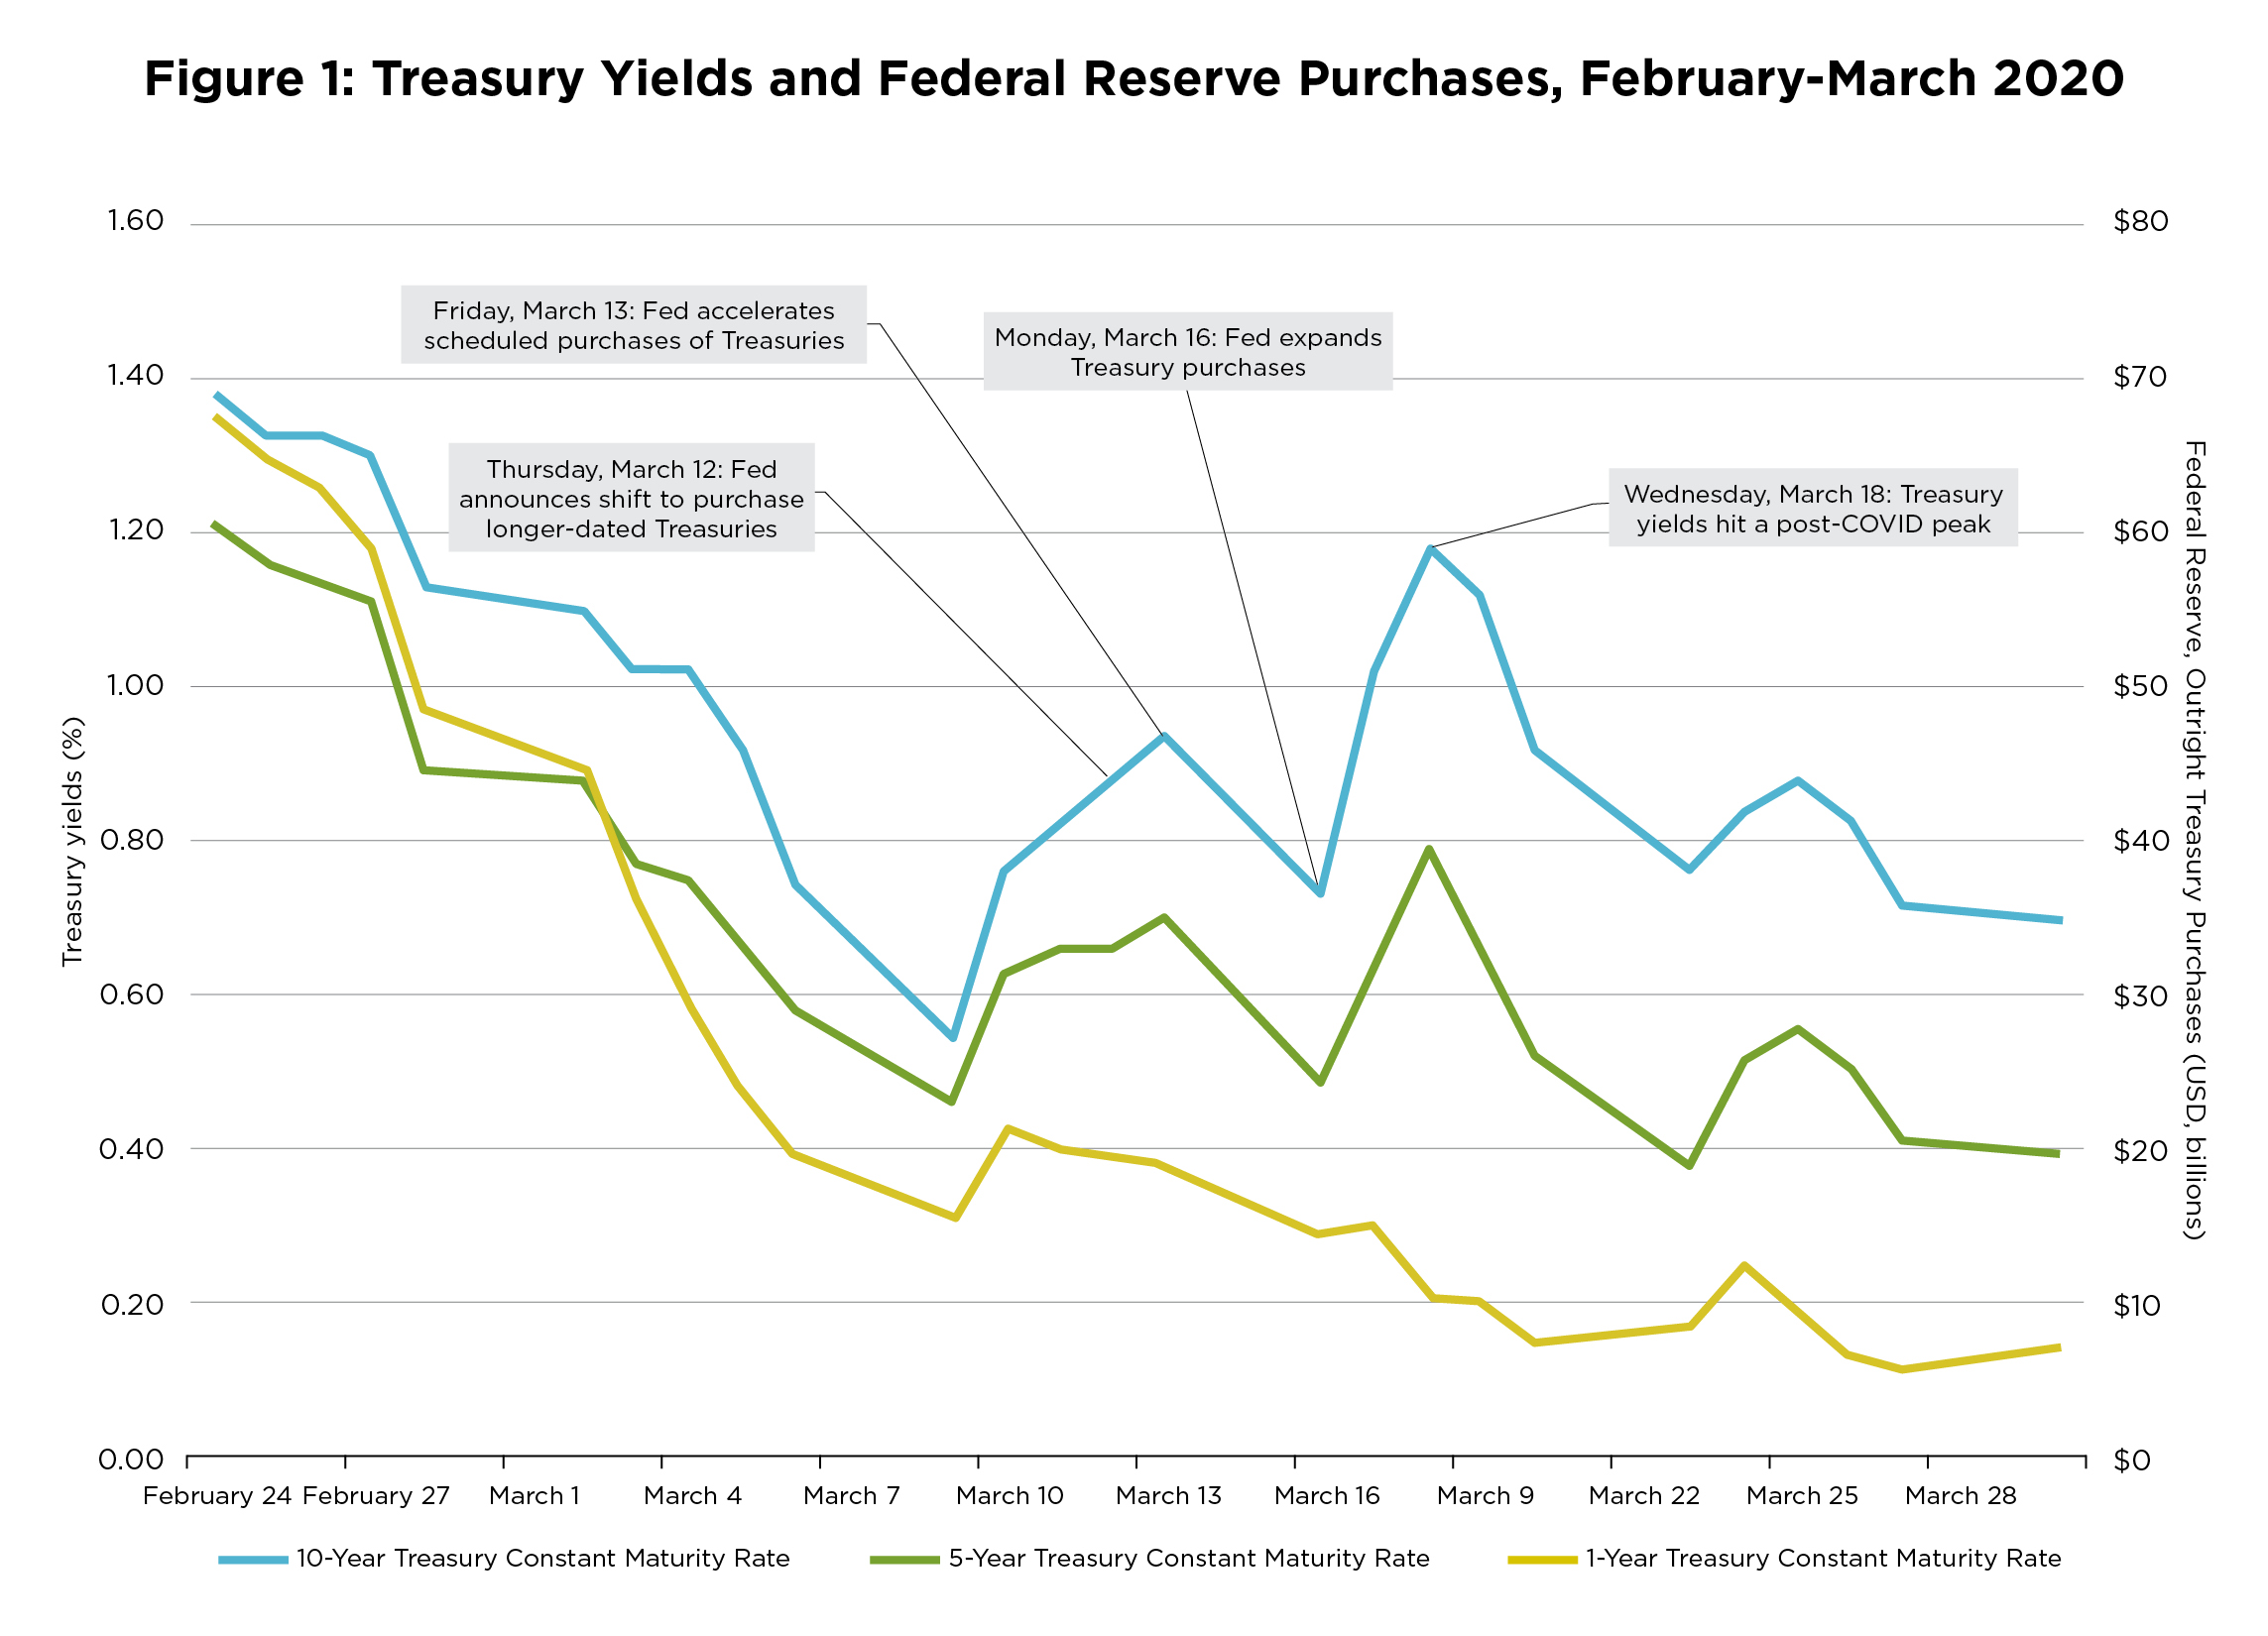 Treasury Yields and Federal Reserve Purchases